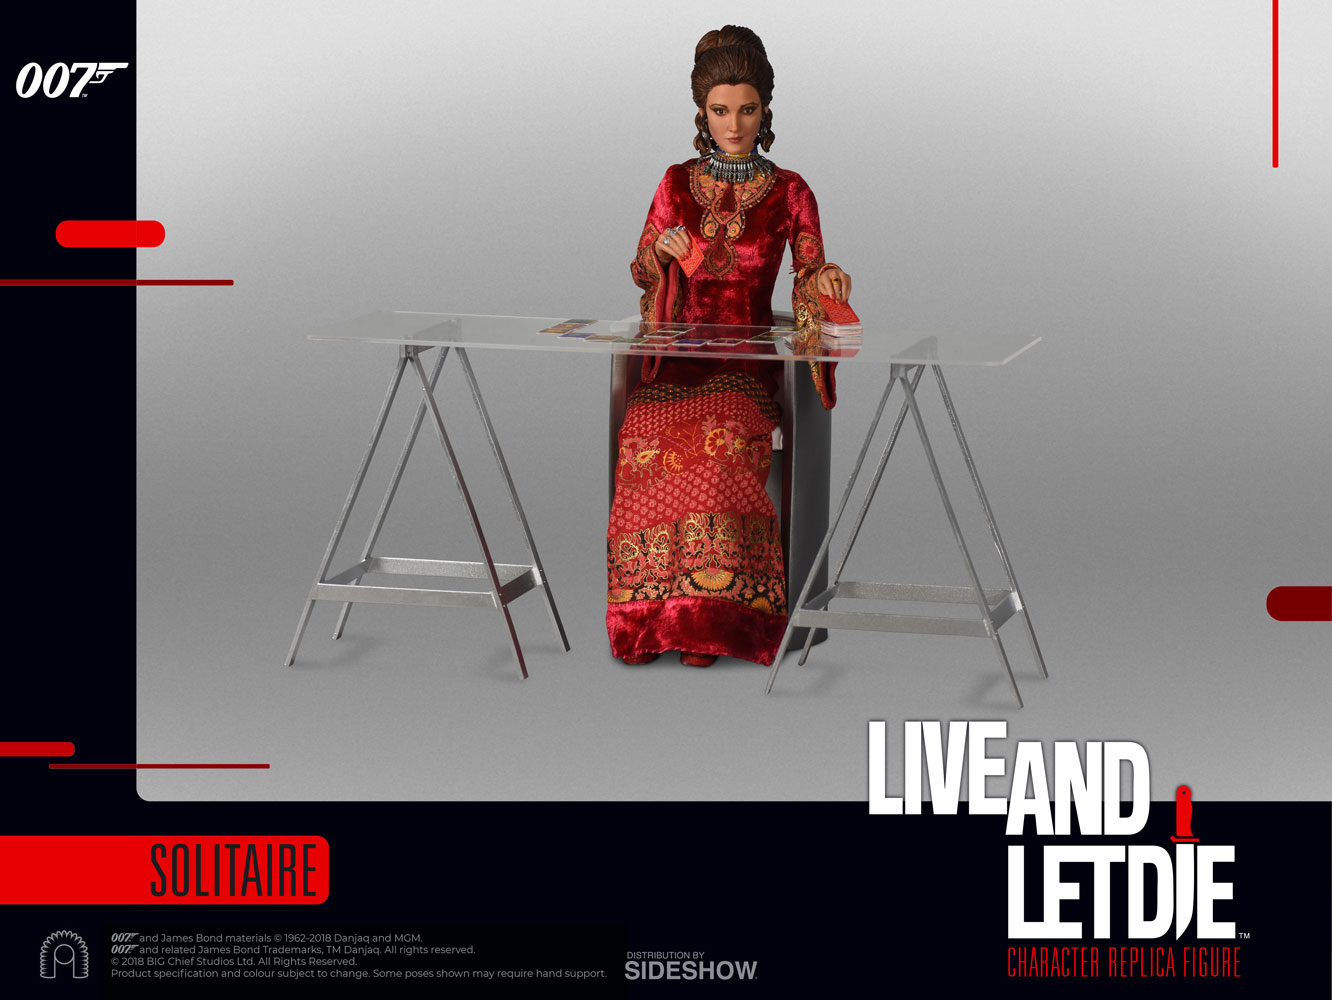 James Bond Live And Let Die Solitaire 1/6 Scale Figure by Big Chief